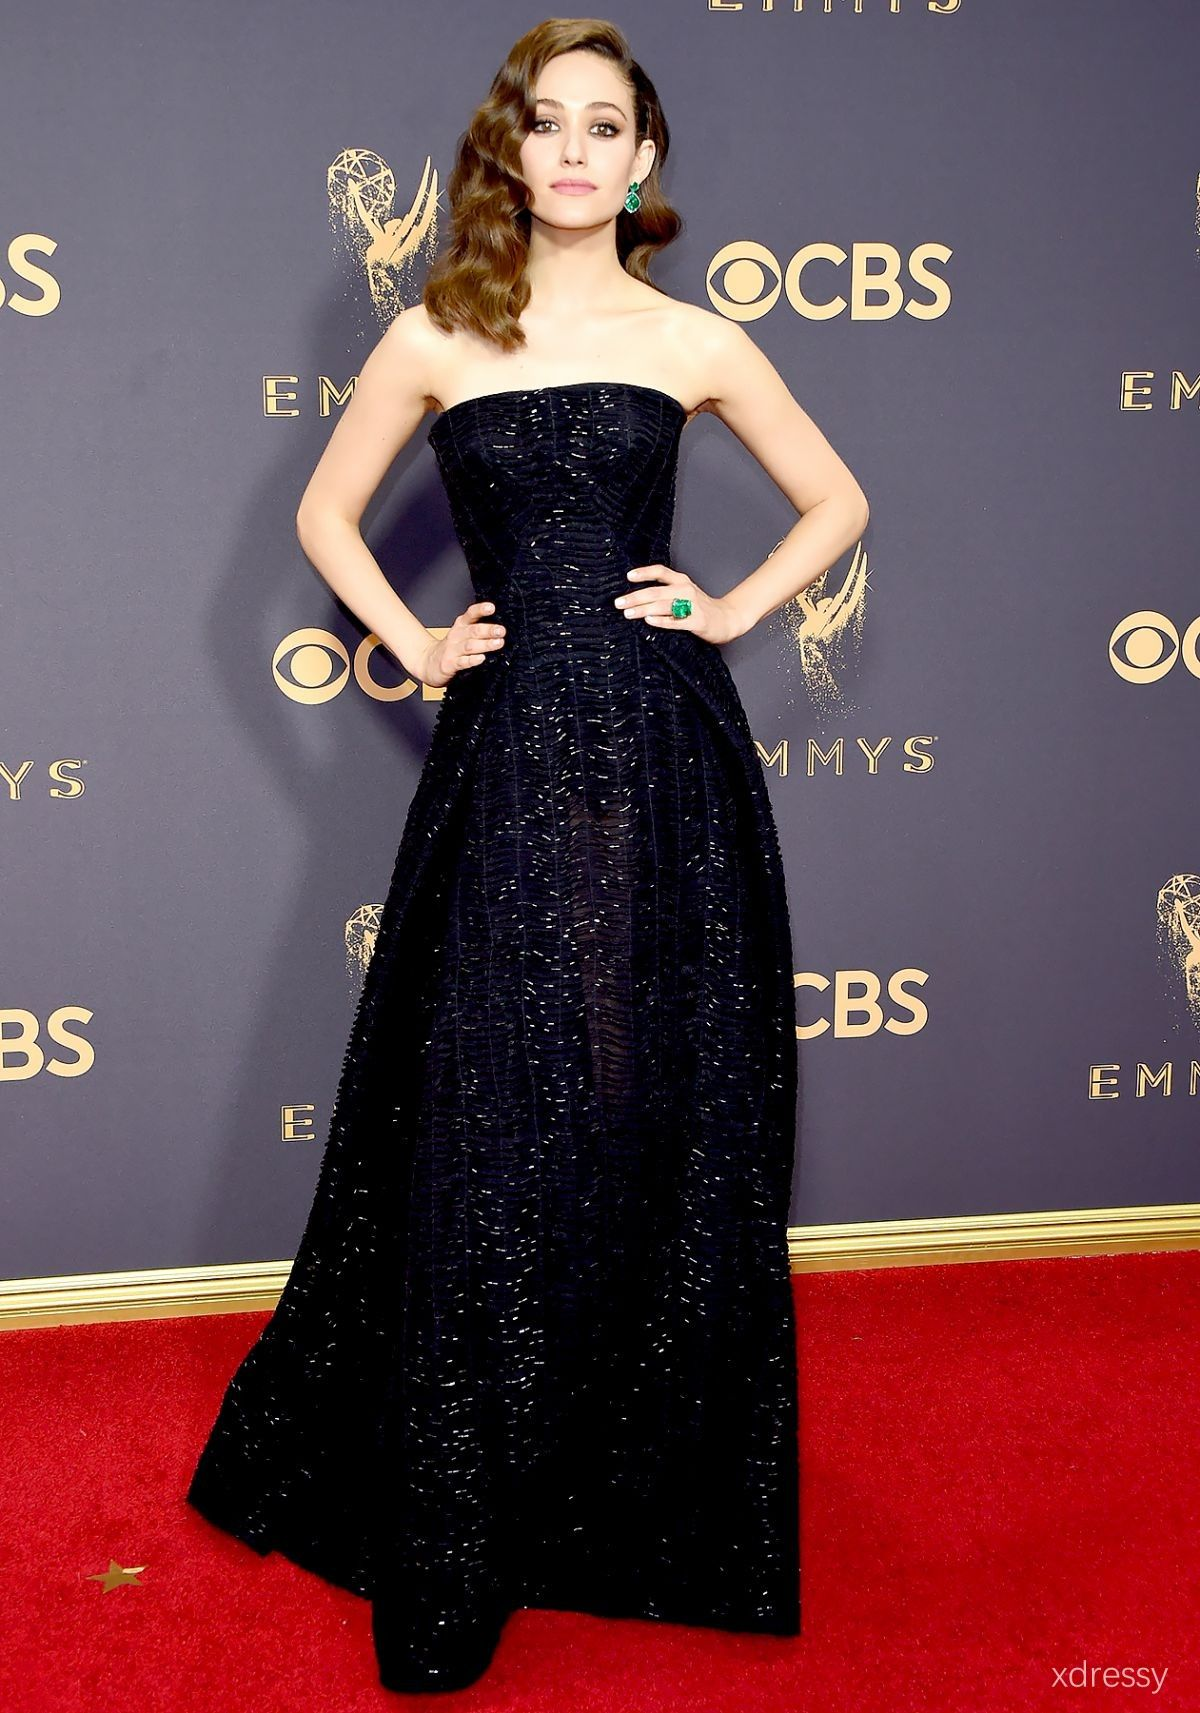 455ff41fca6 Emmy Rossum black strapless prom gown with sequin detailing Emmys 2017